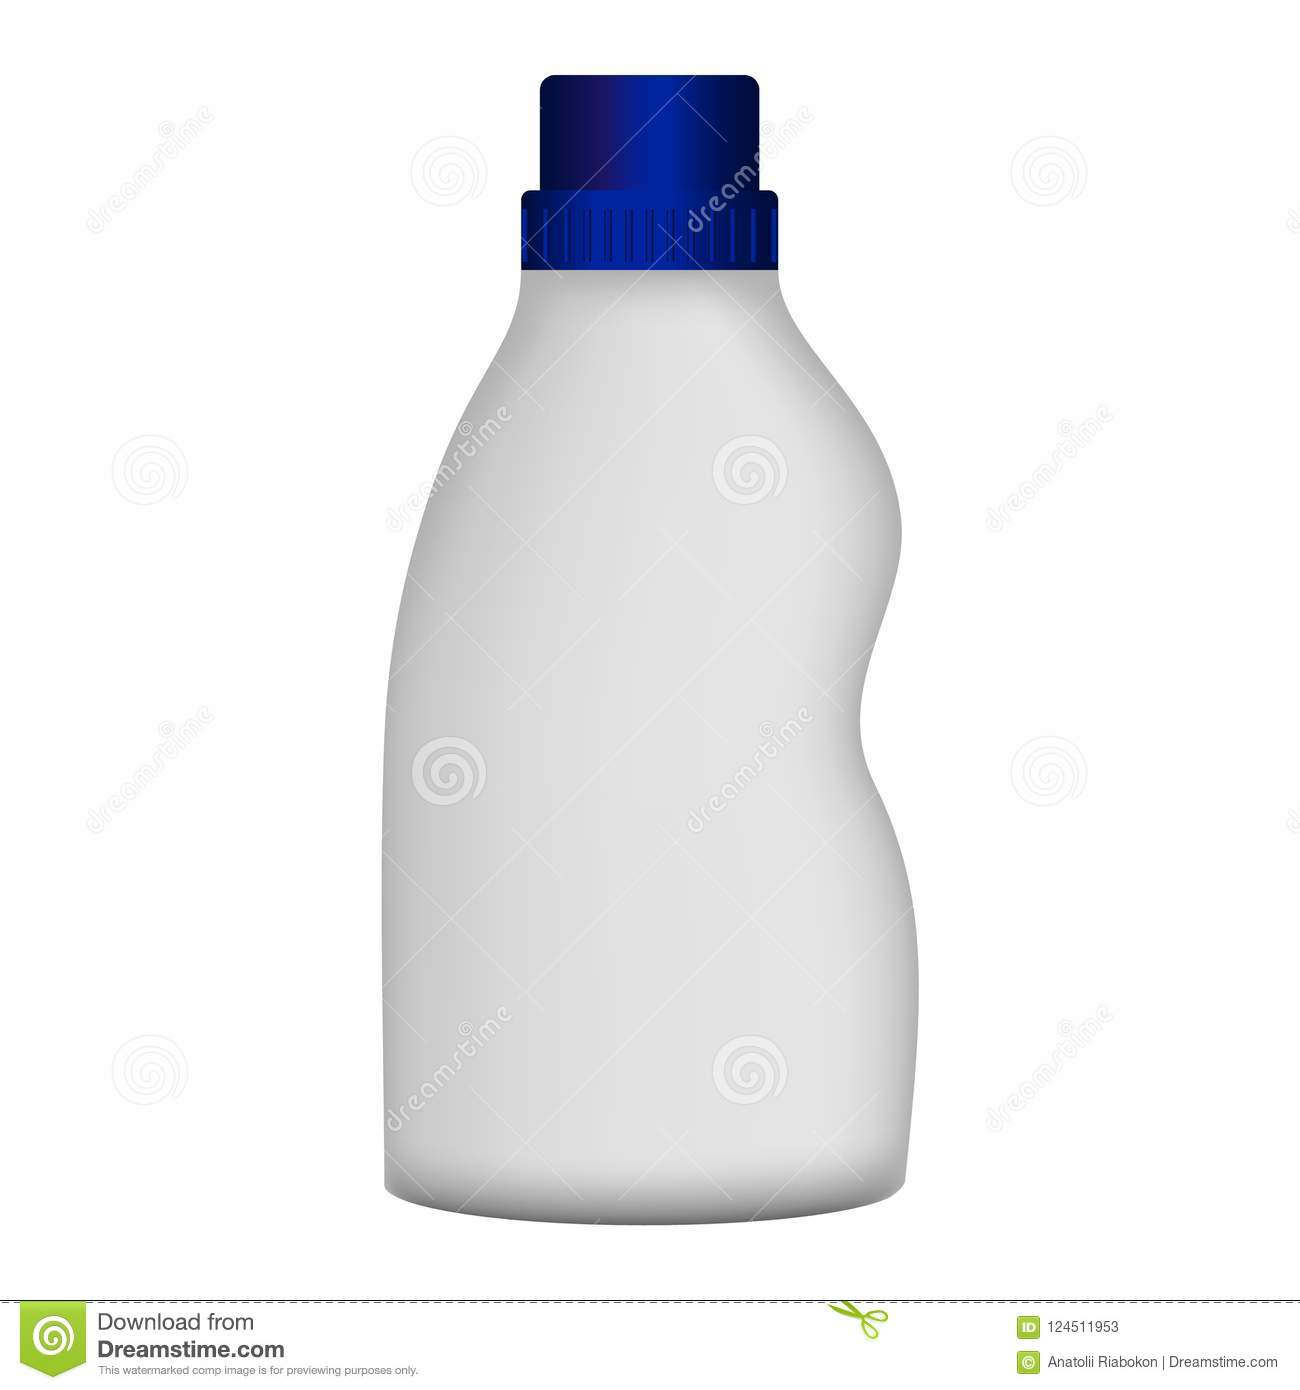 Plastic bottle cleaner mockup, realistic style